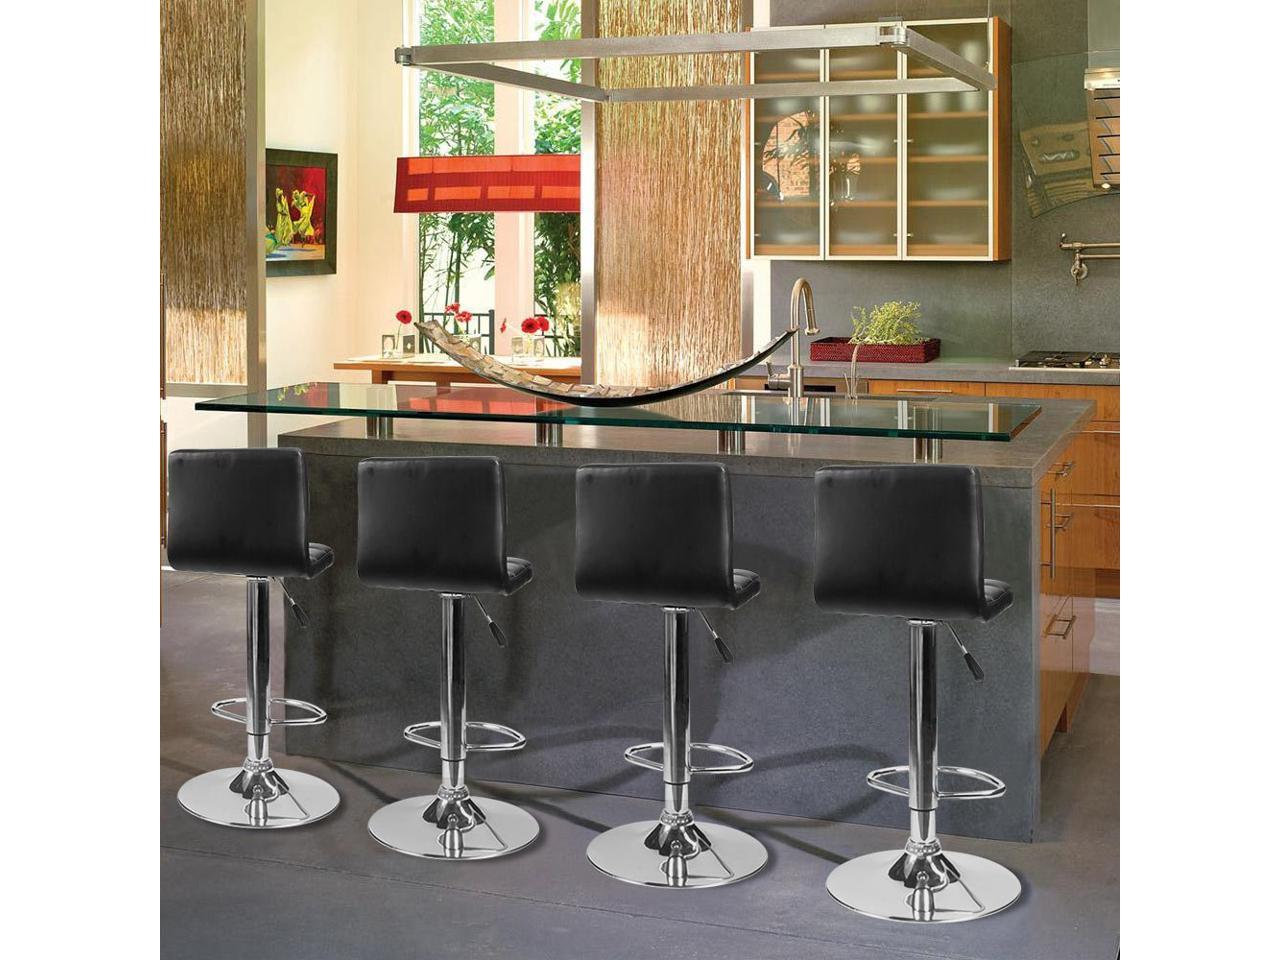 Homall Bar Stools Modern PU Leather Adjustable Swivel Barstools, Armless  Hydraulic Kitchen Counter Bar Stool Synthetic Leather Extra Height Square  ...